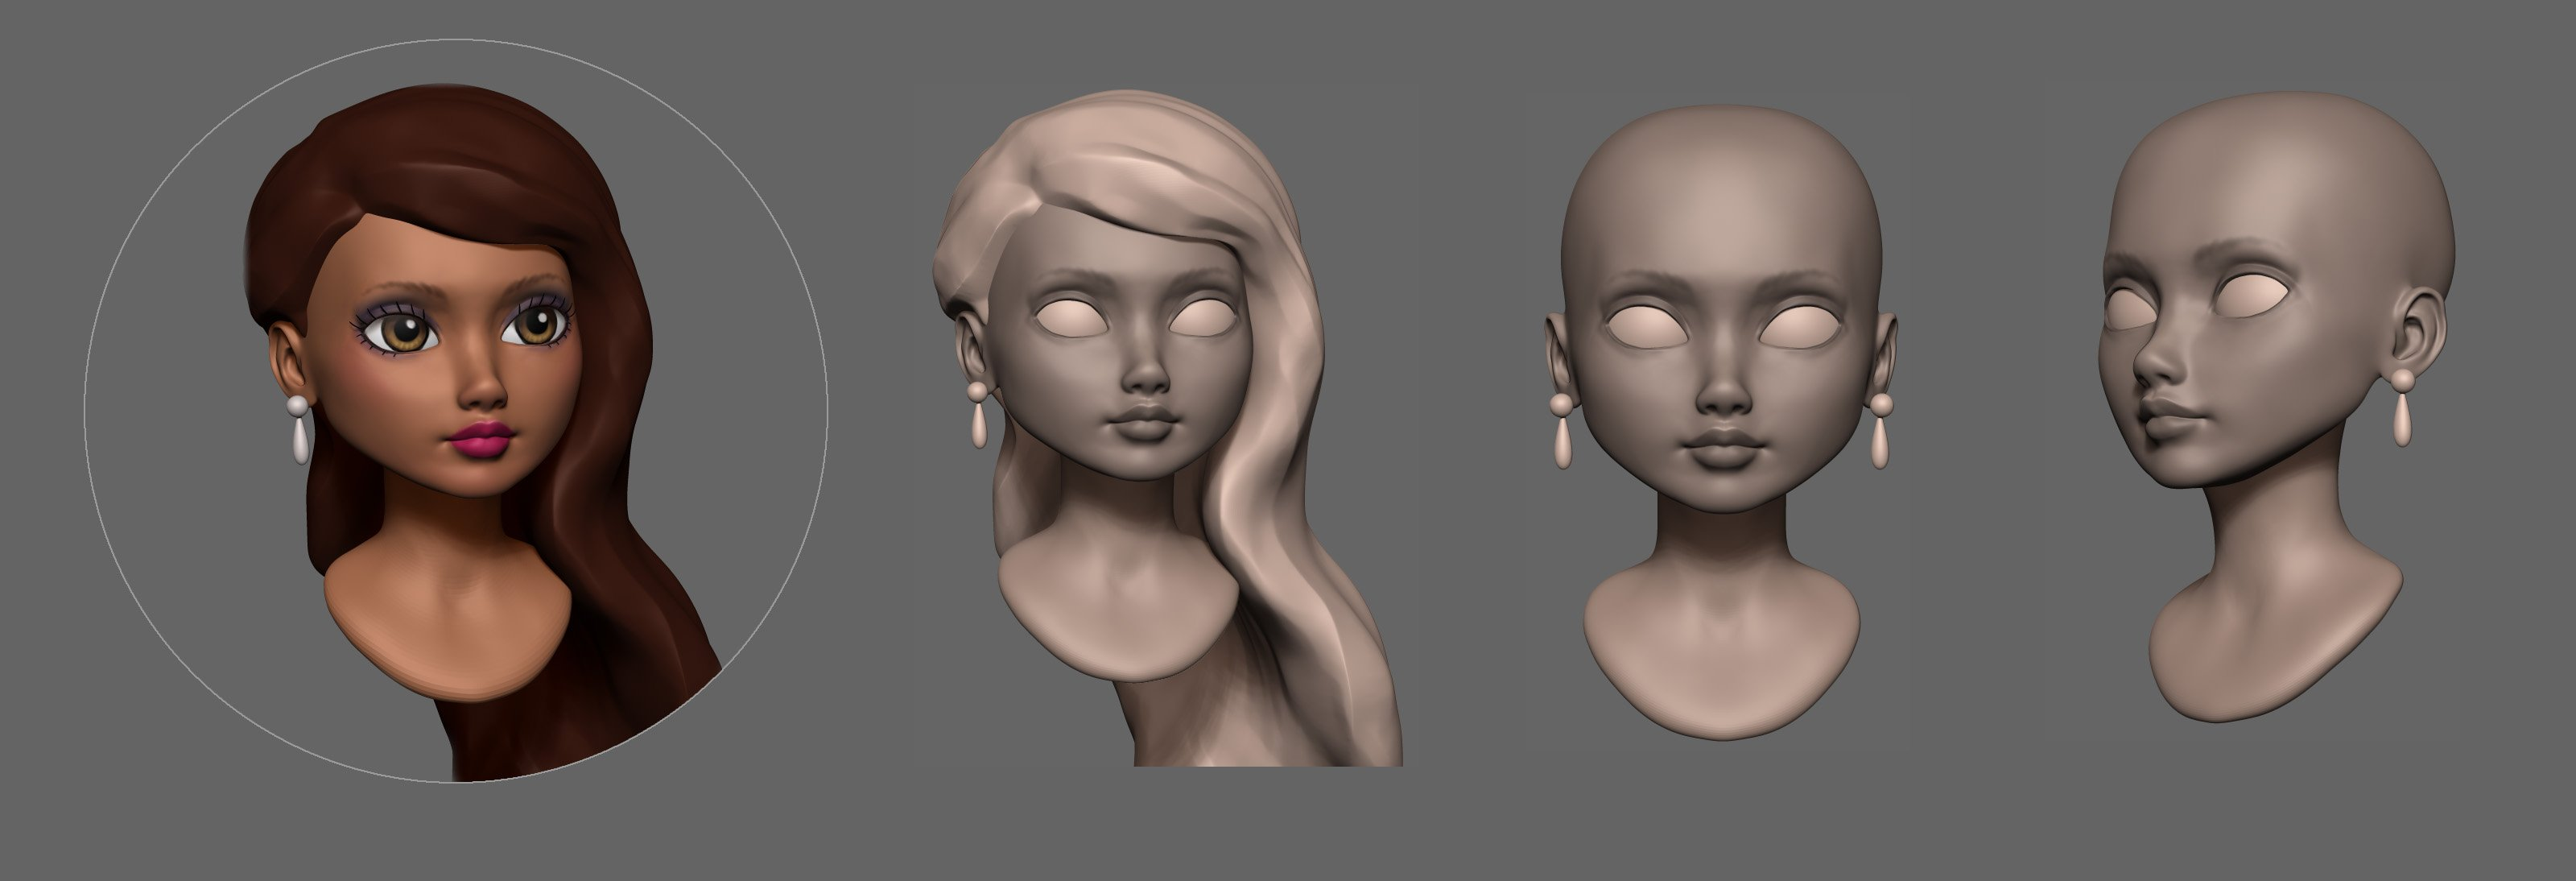 Debutante Custom Doll Head Sculpt in progress